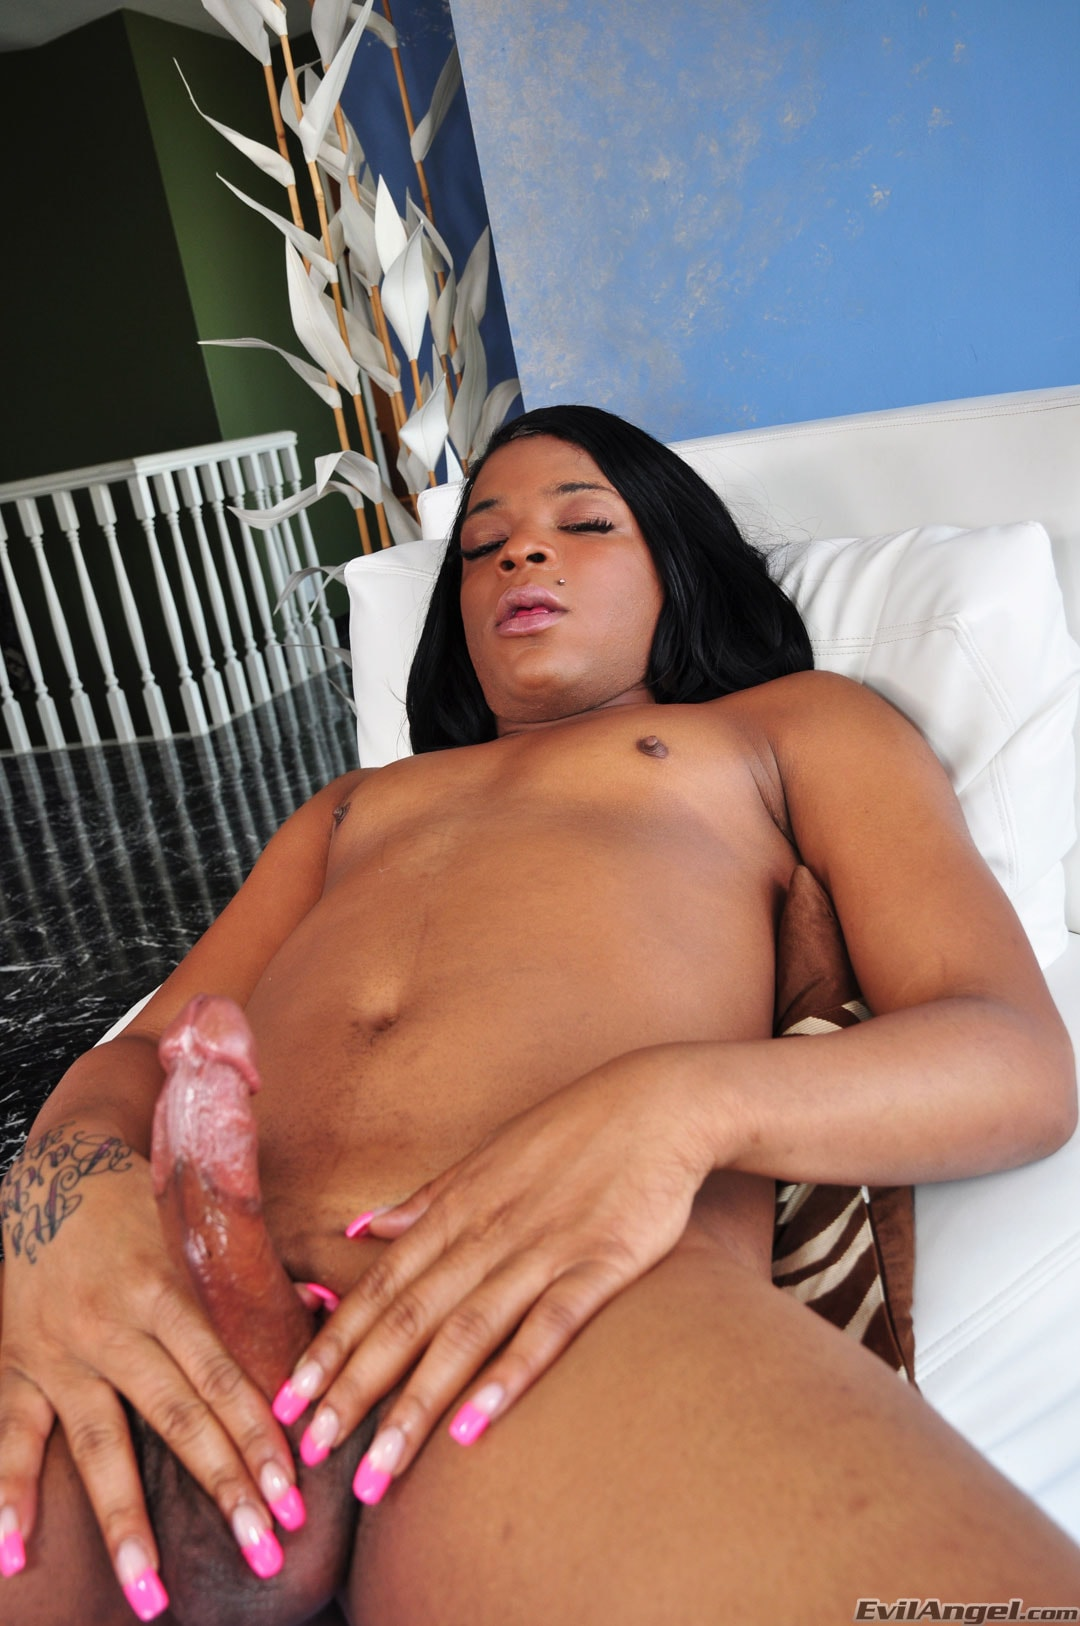 I Love Black Shemales 'Black Shemale Idol - The Auditions' starring Lola Bonnie (Photo 22)